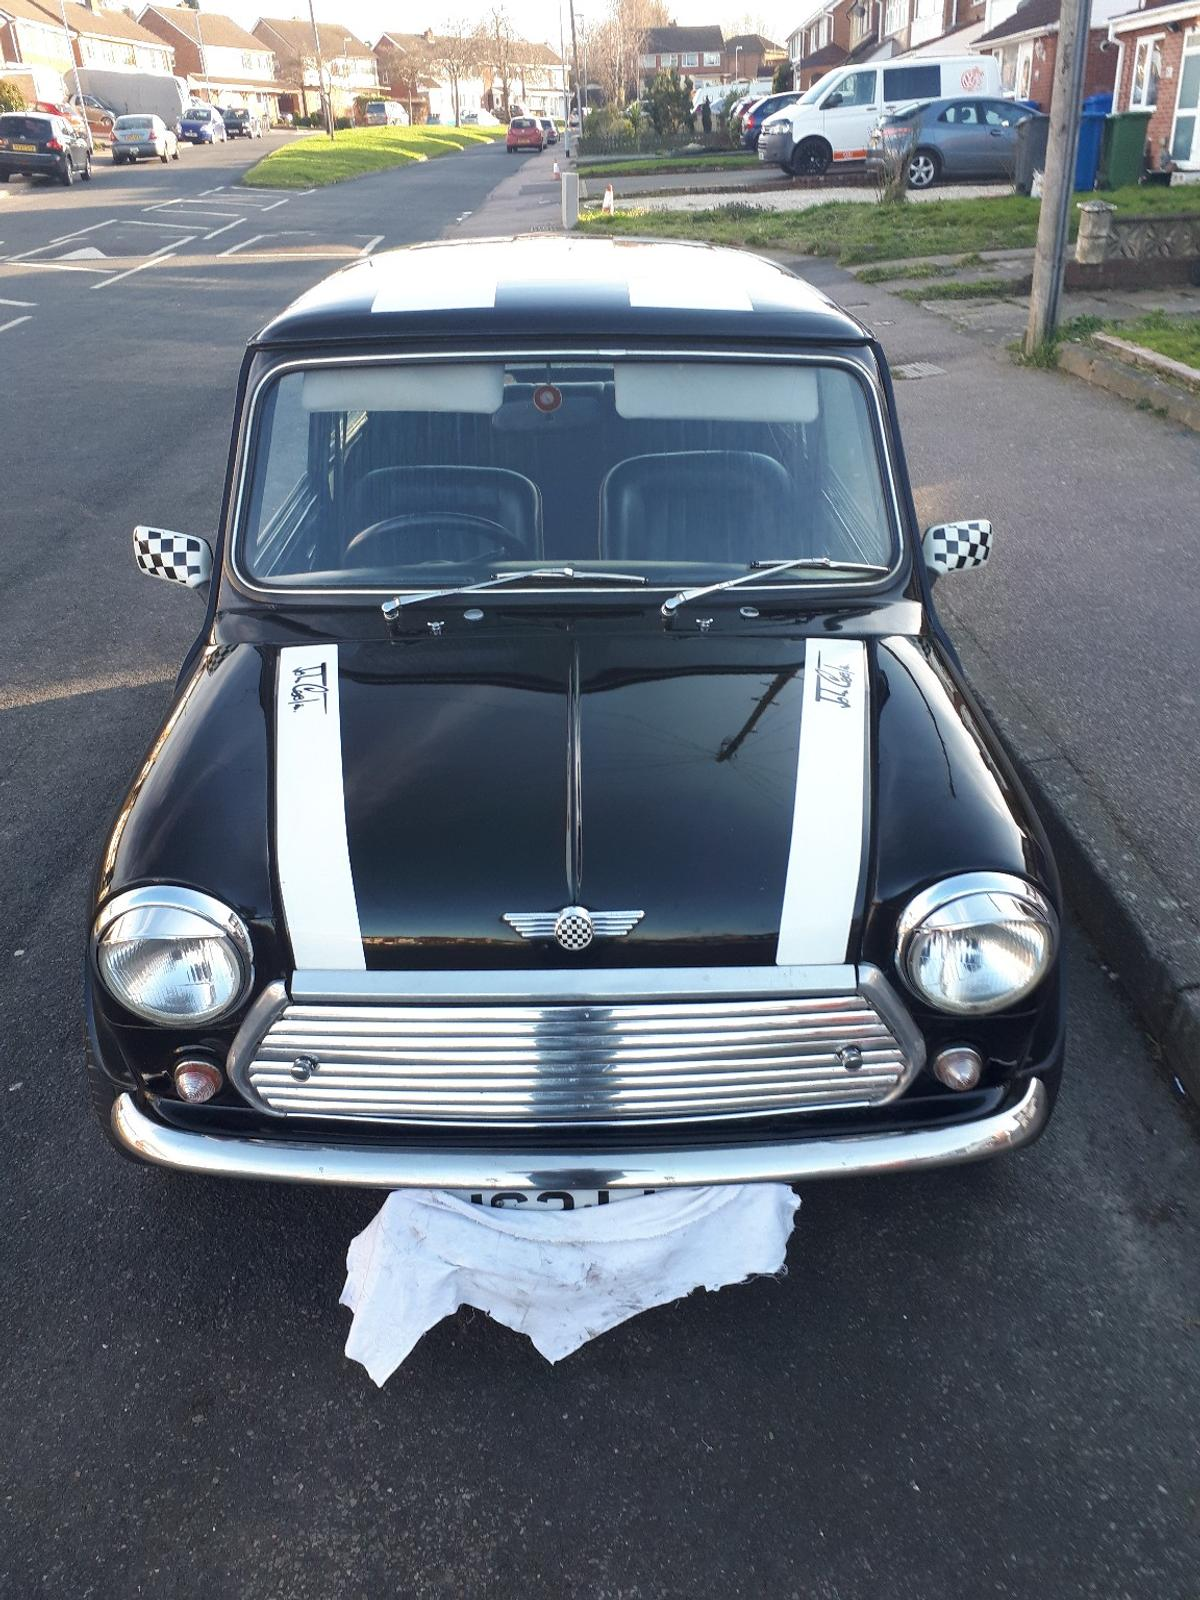 721246368a0 rover mini Cooper spi for sale in B77 Tamworth for £4,000.00 for ...